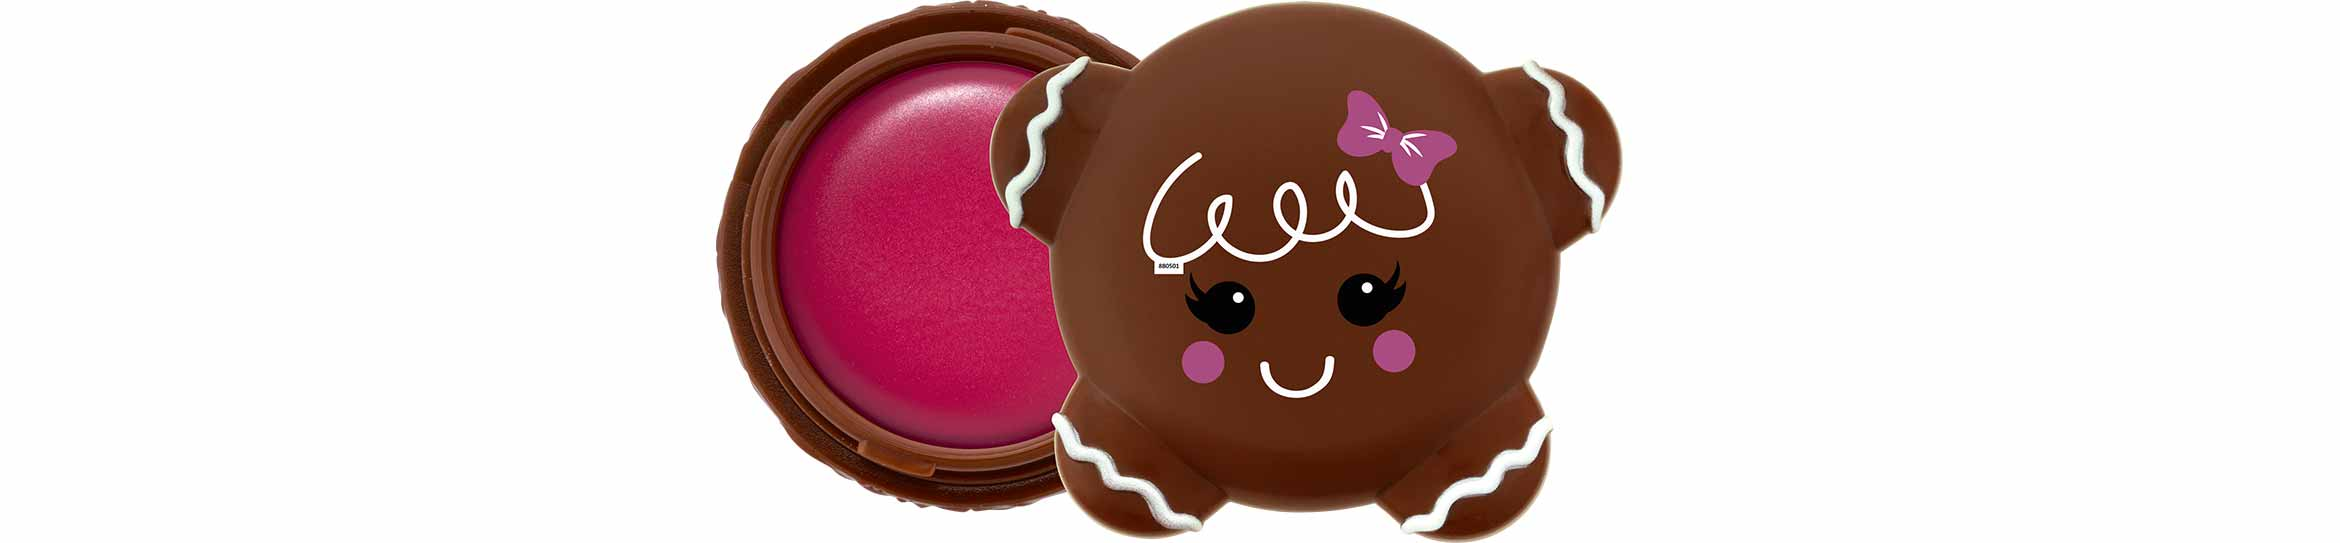 essence x-mas wishes candy kisses gingerbread lip balm